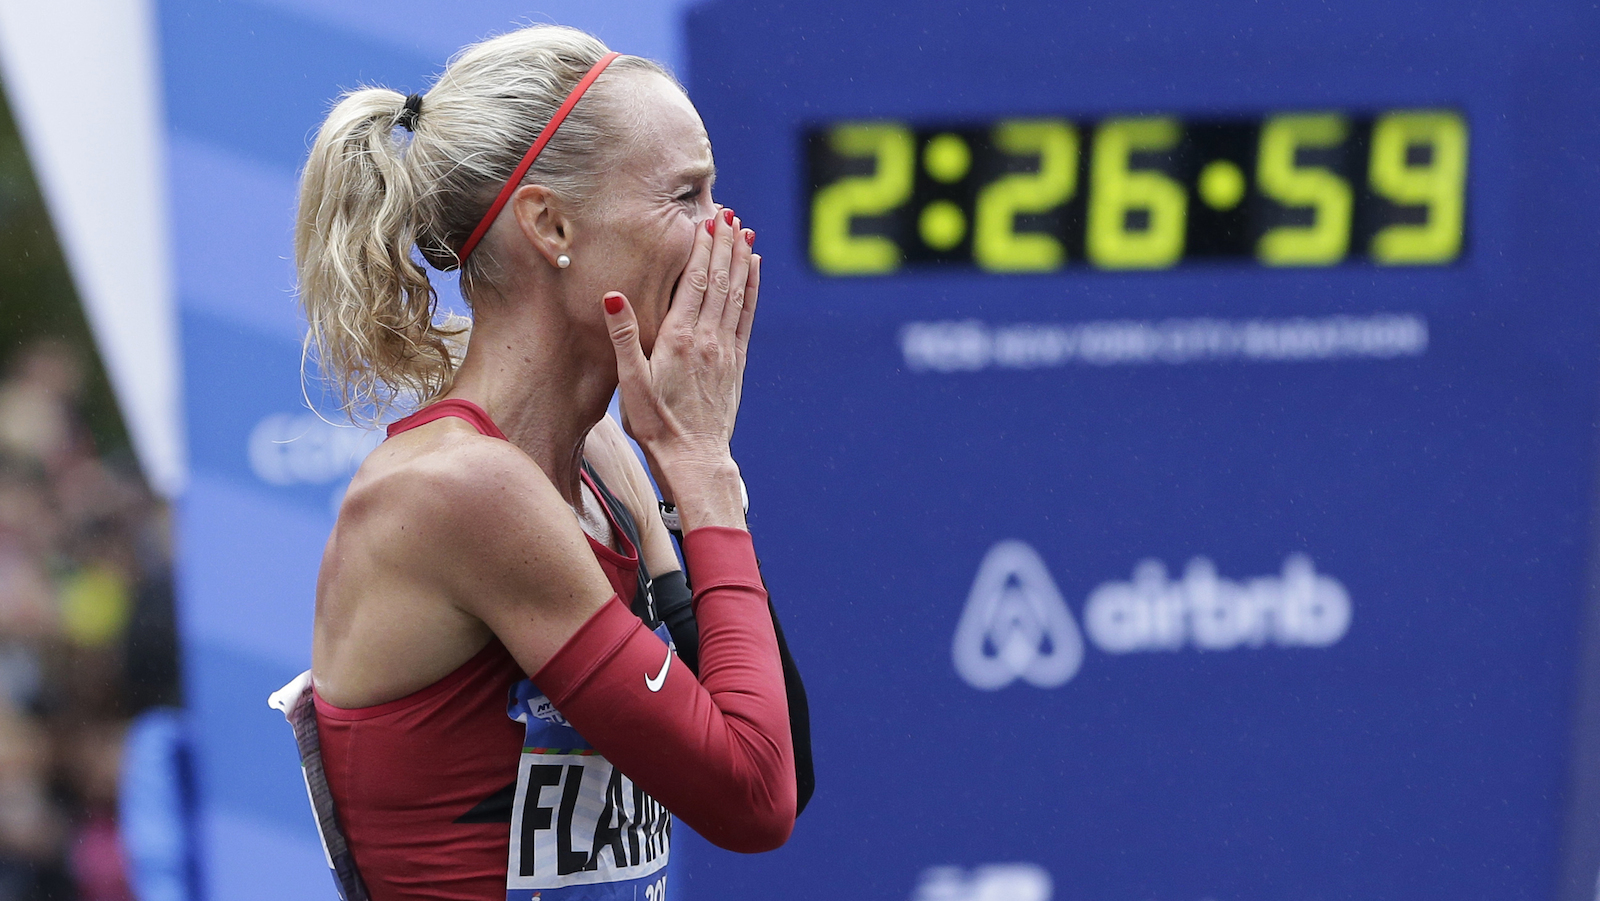 Shalene Flanagan of the United States reacts after crossing the finish line first in the women's division of the New York City Marathon in New York, Sunday, Nov. 5, 2017. (AP Photo/Seth Wenig)